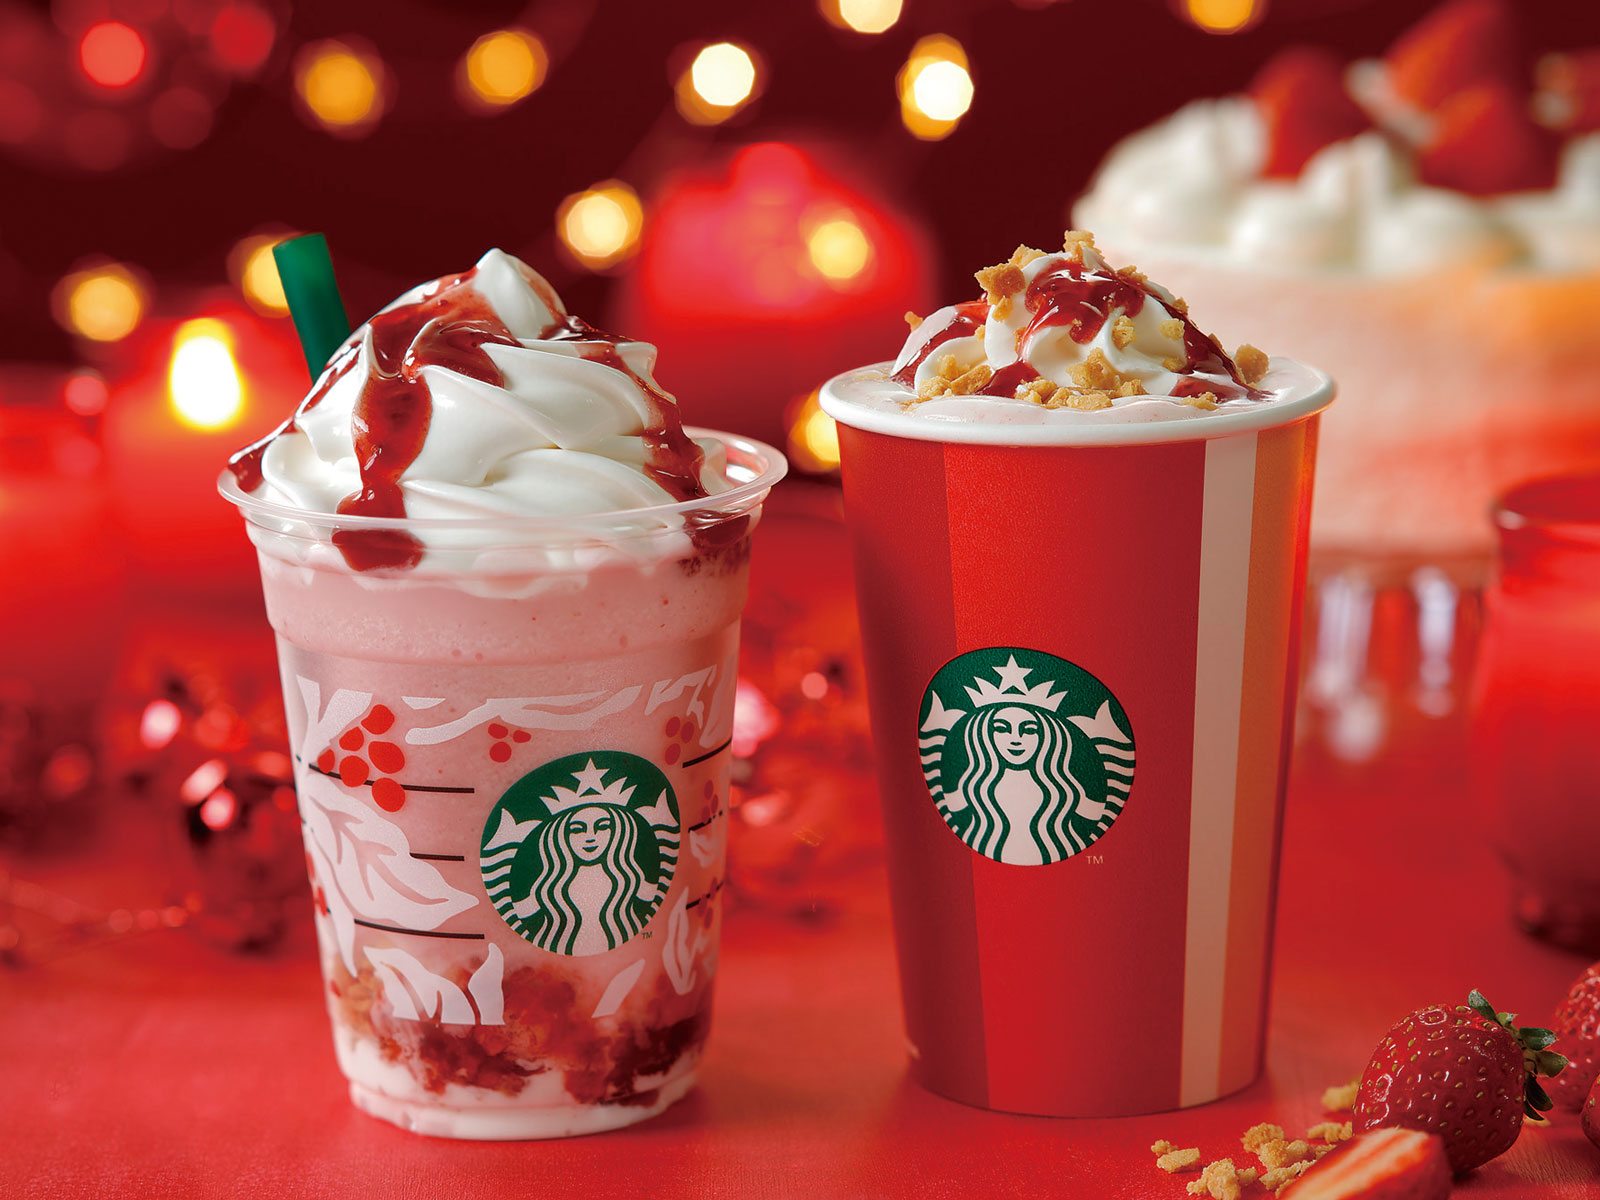 13 Starbucks Holiday Drinks From Around the World